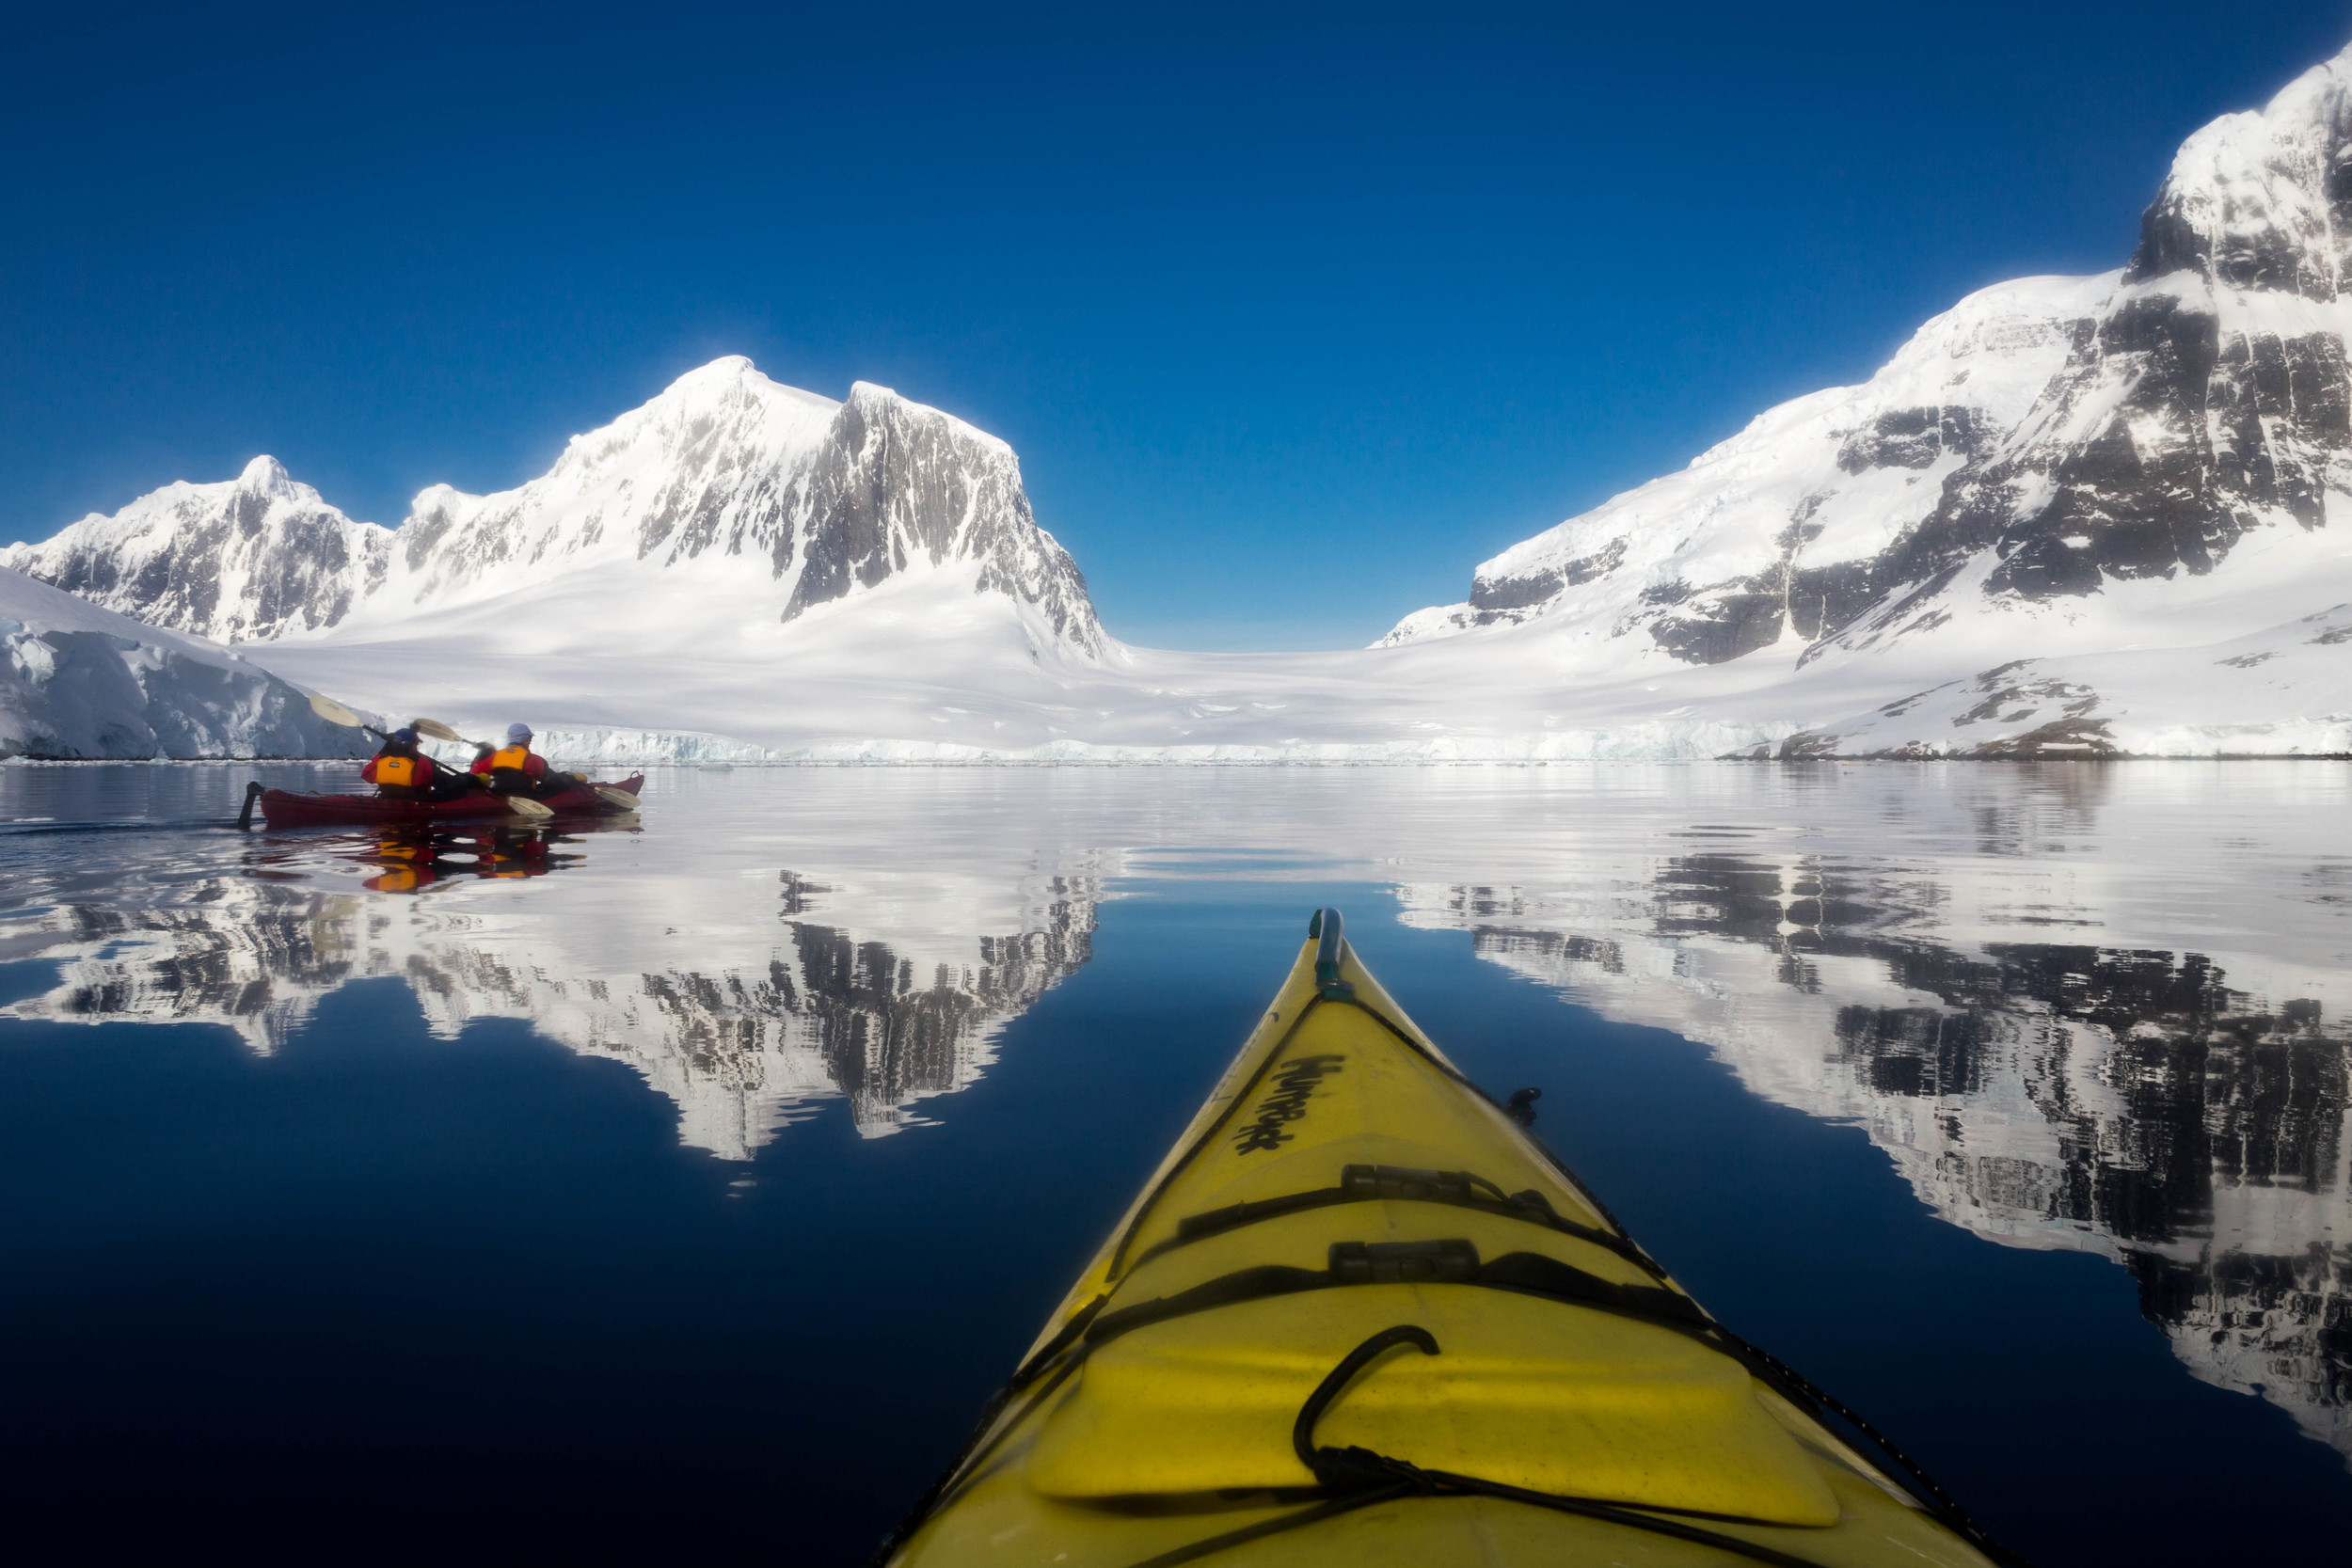 Mirror waters and epic peaks as we paddle alongnearJougla Point and Goudier Island.